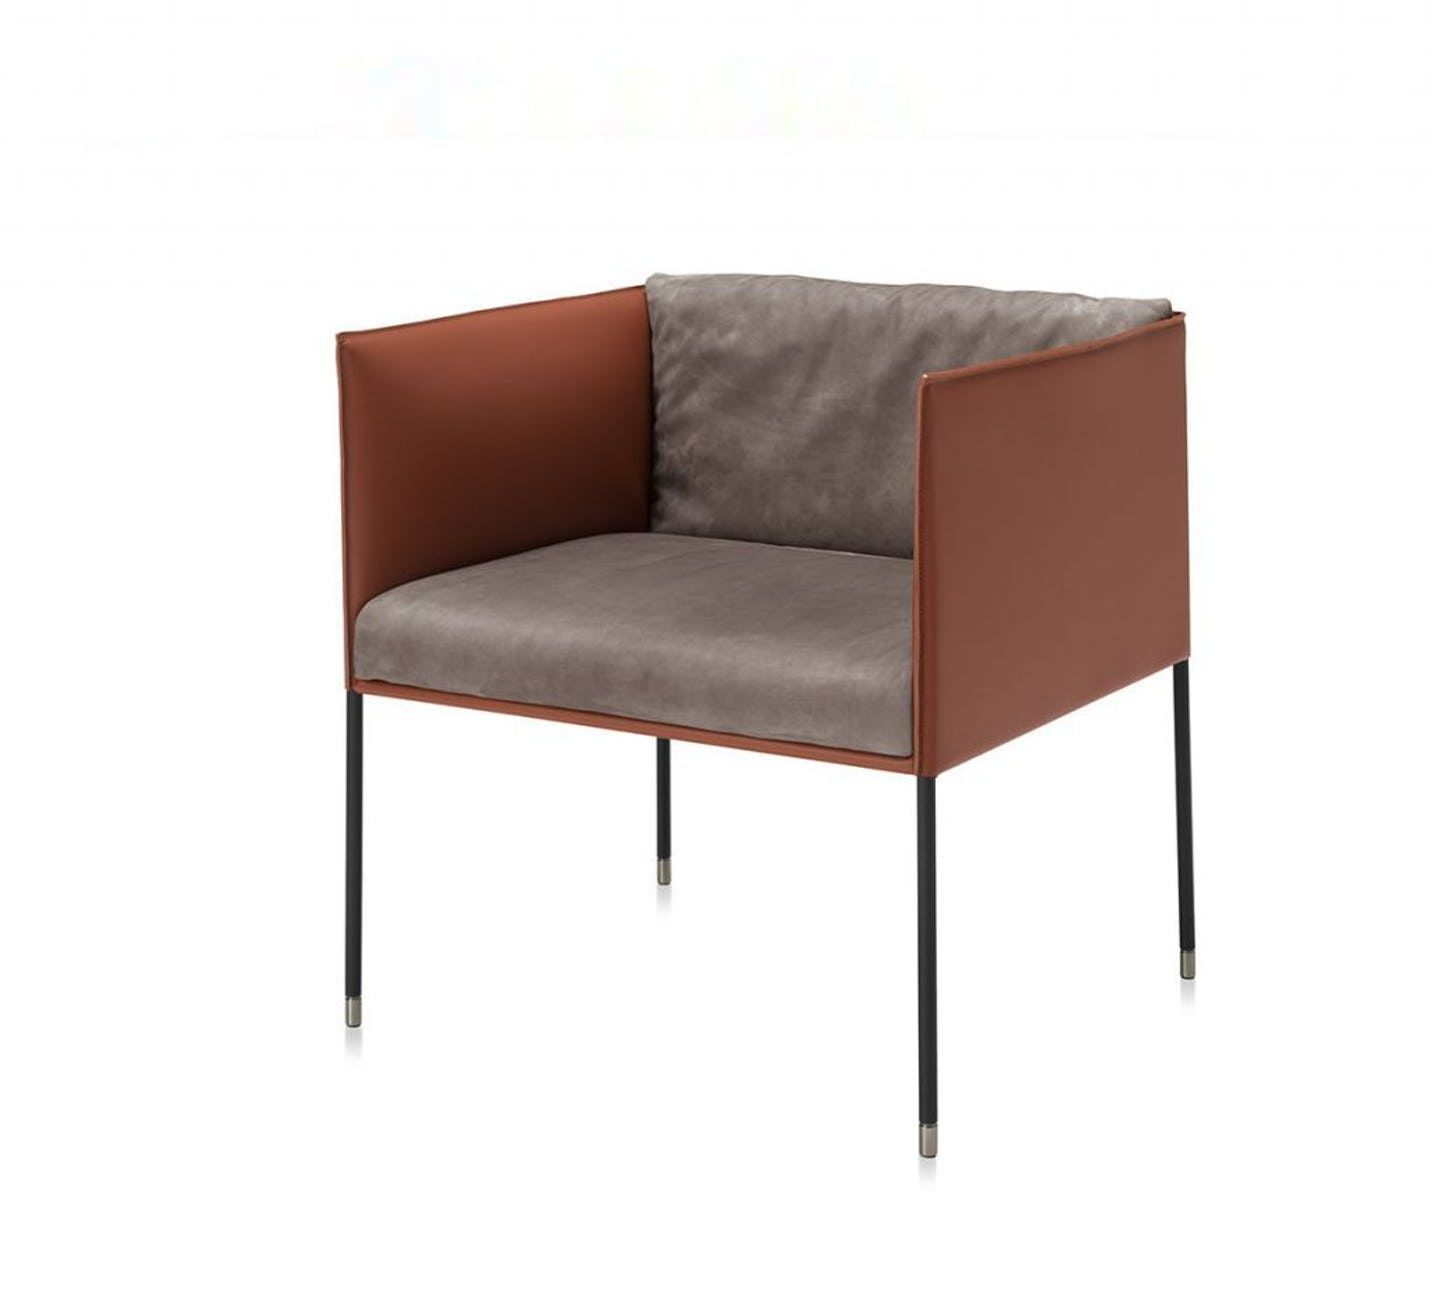 Square Armchair by Frag Furniture  Square armchairs, Furniture